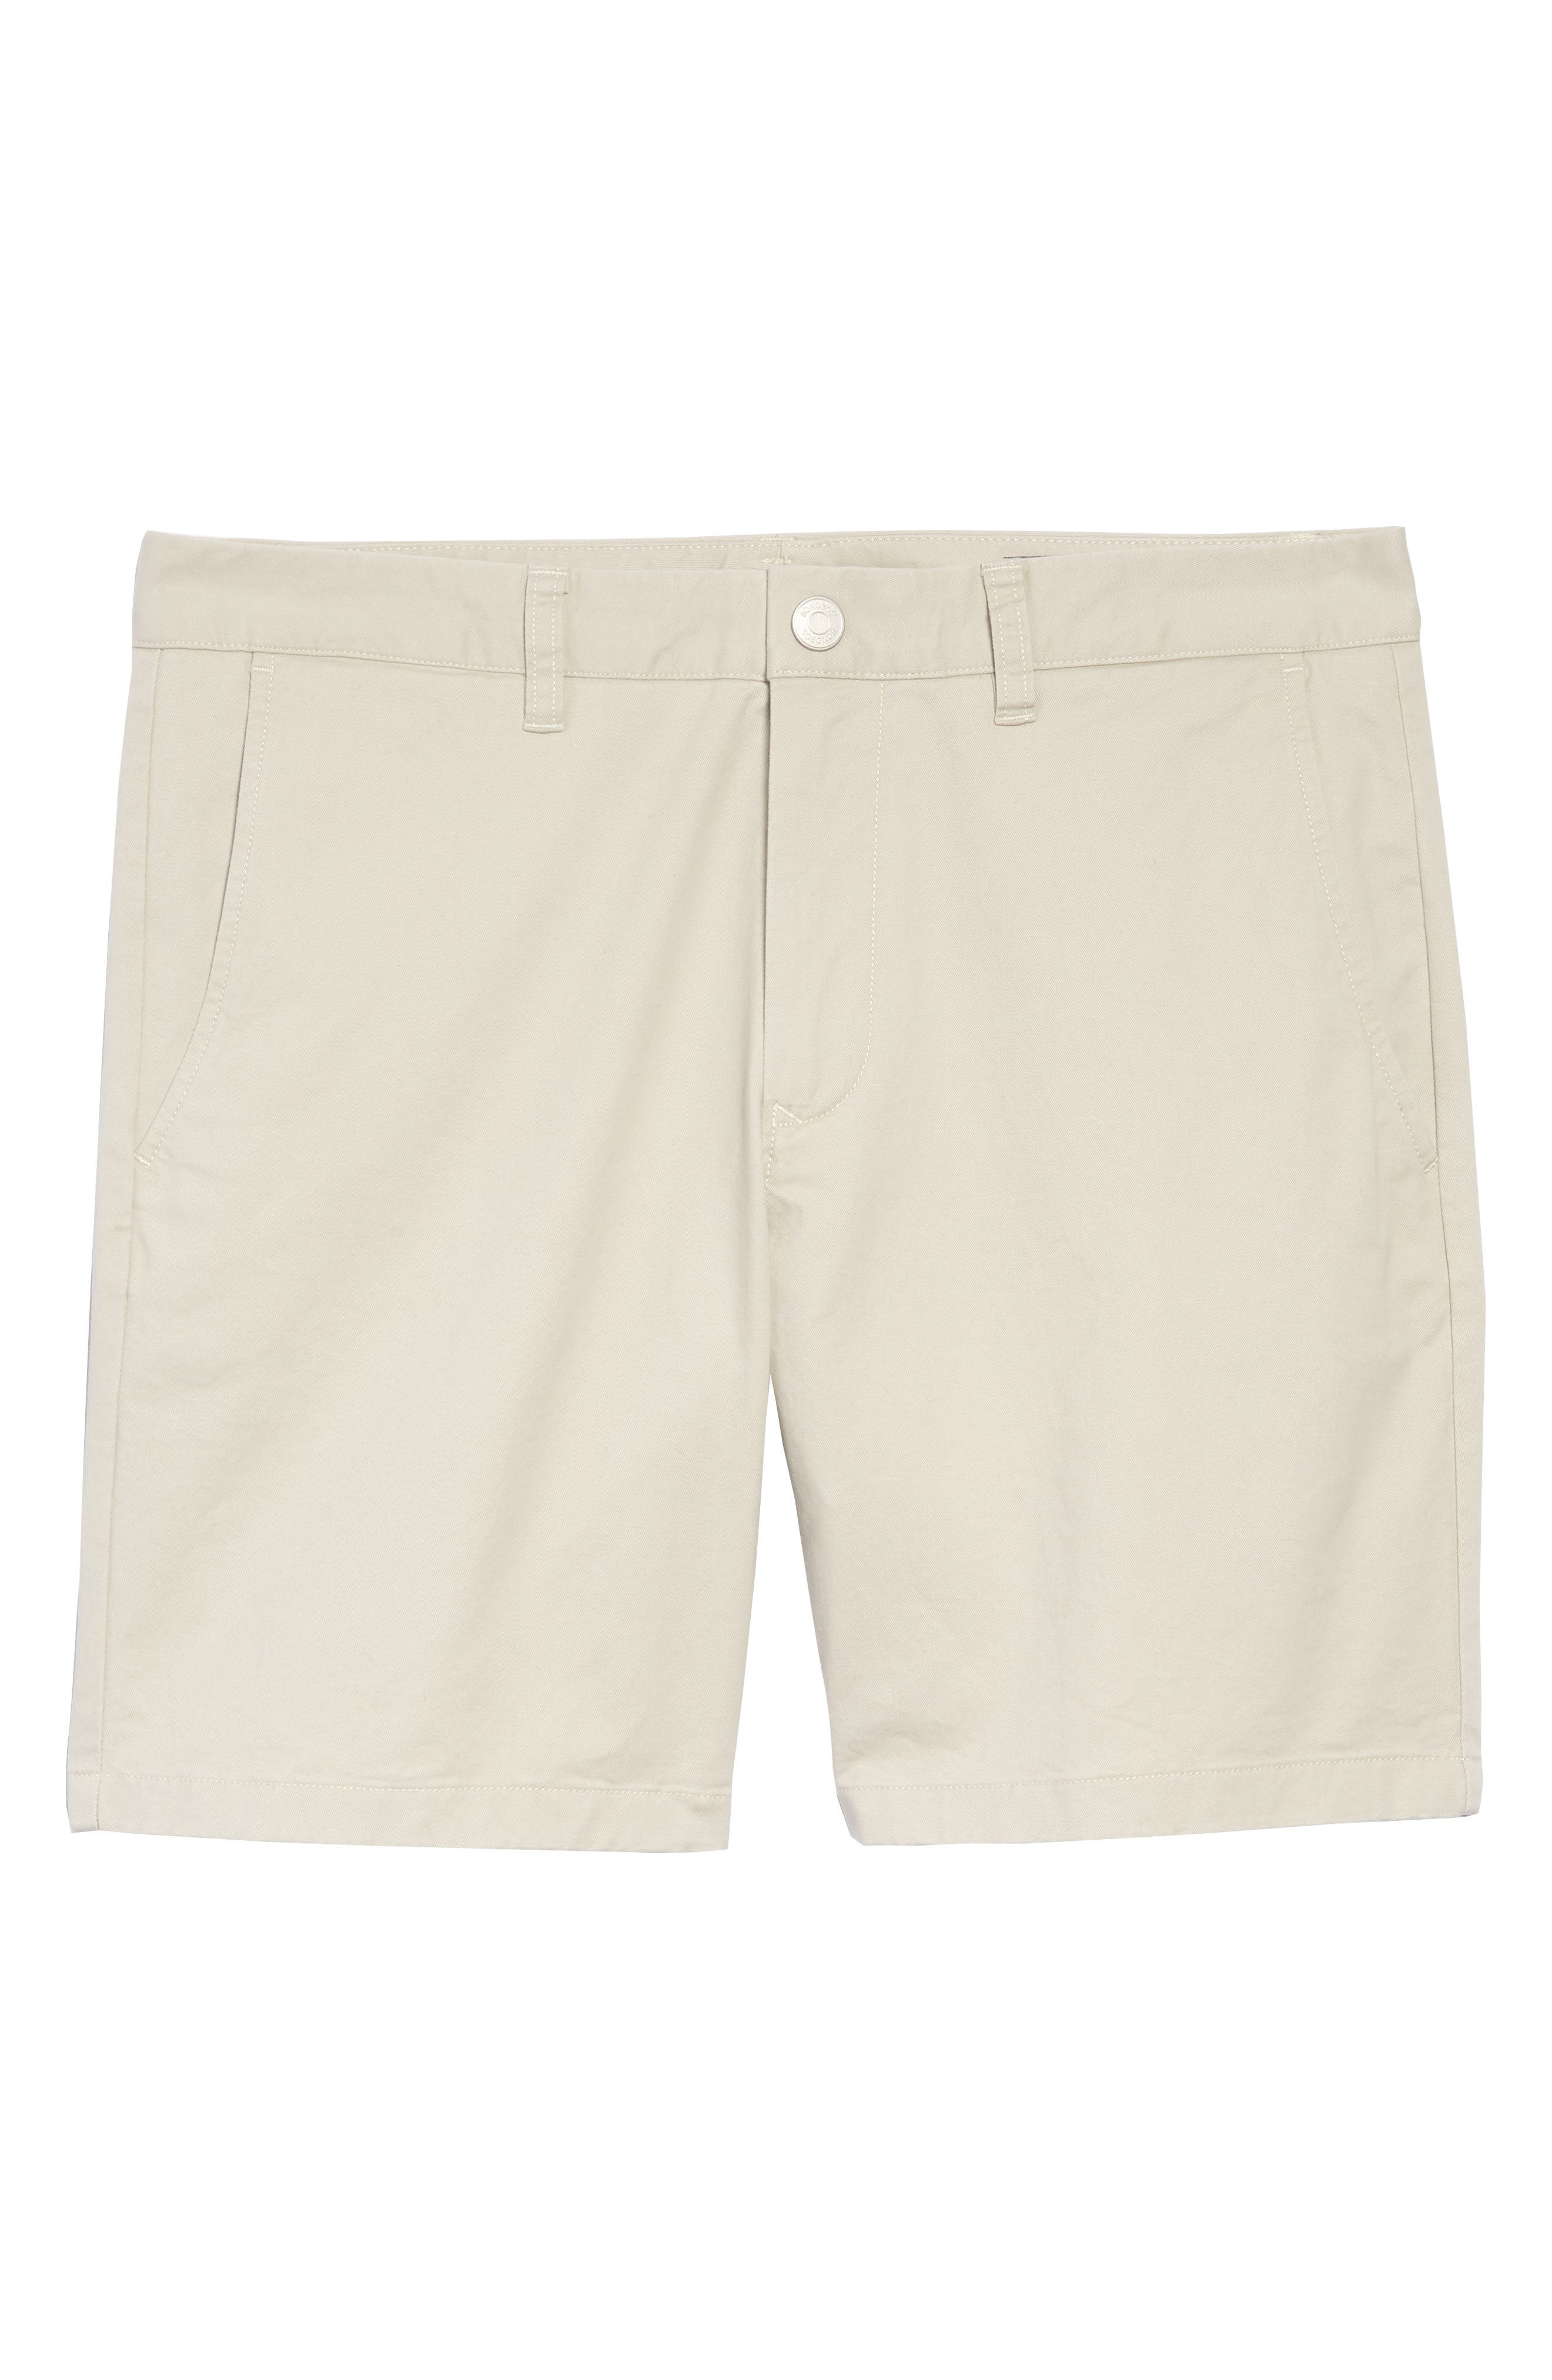 Stretch Washed Chino 7-Inch Shorts,                             Alternate thumbnail 123, color,